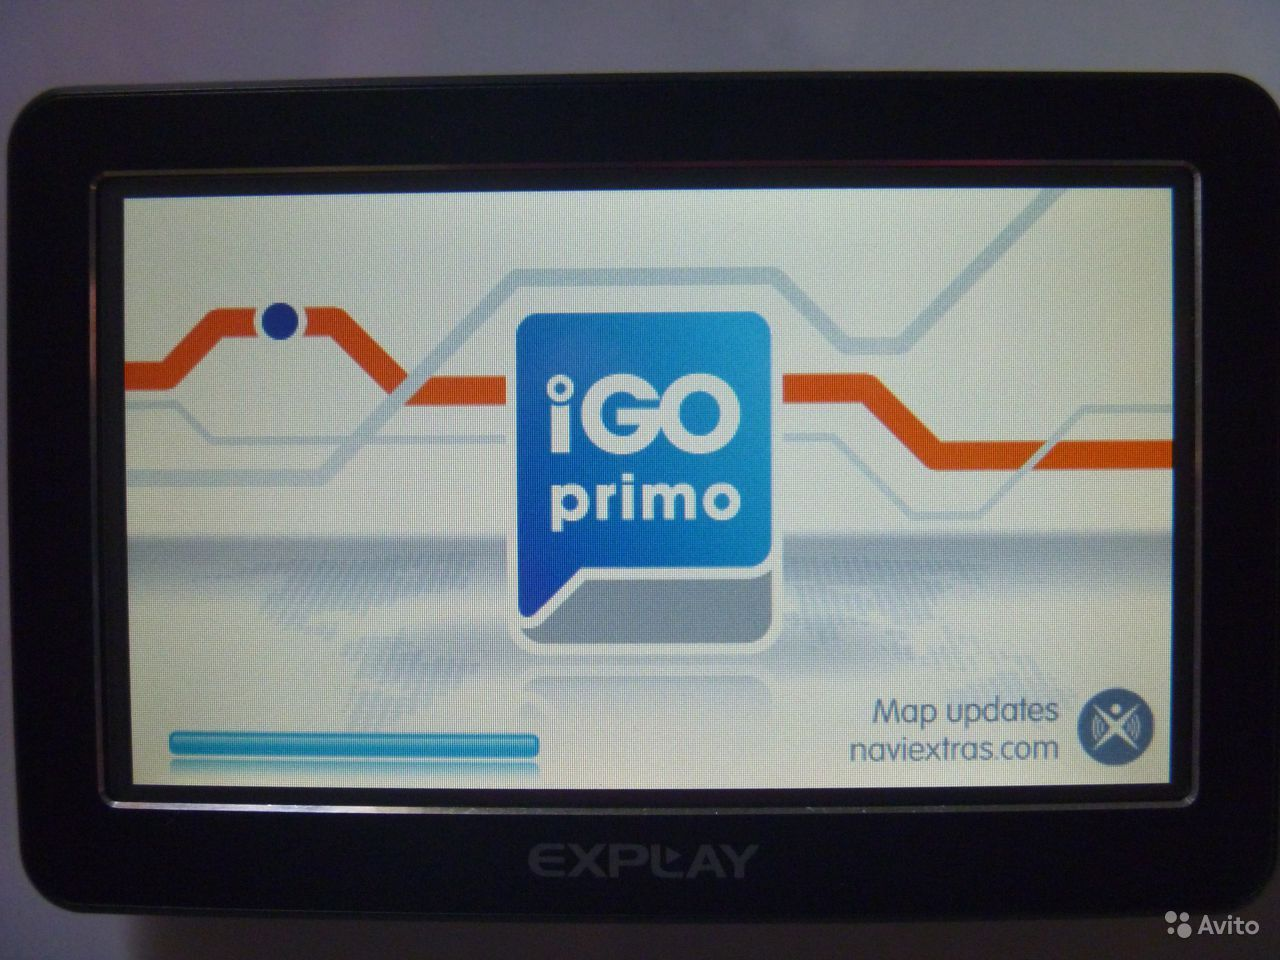 New version of gps navigation from the market leader to provide software applications pdas